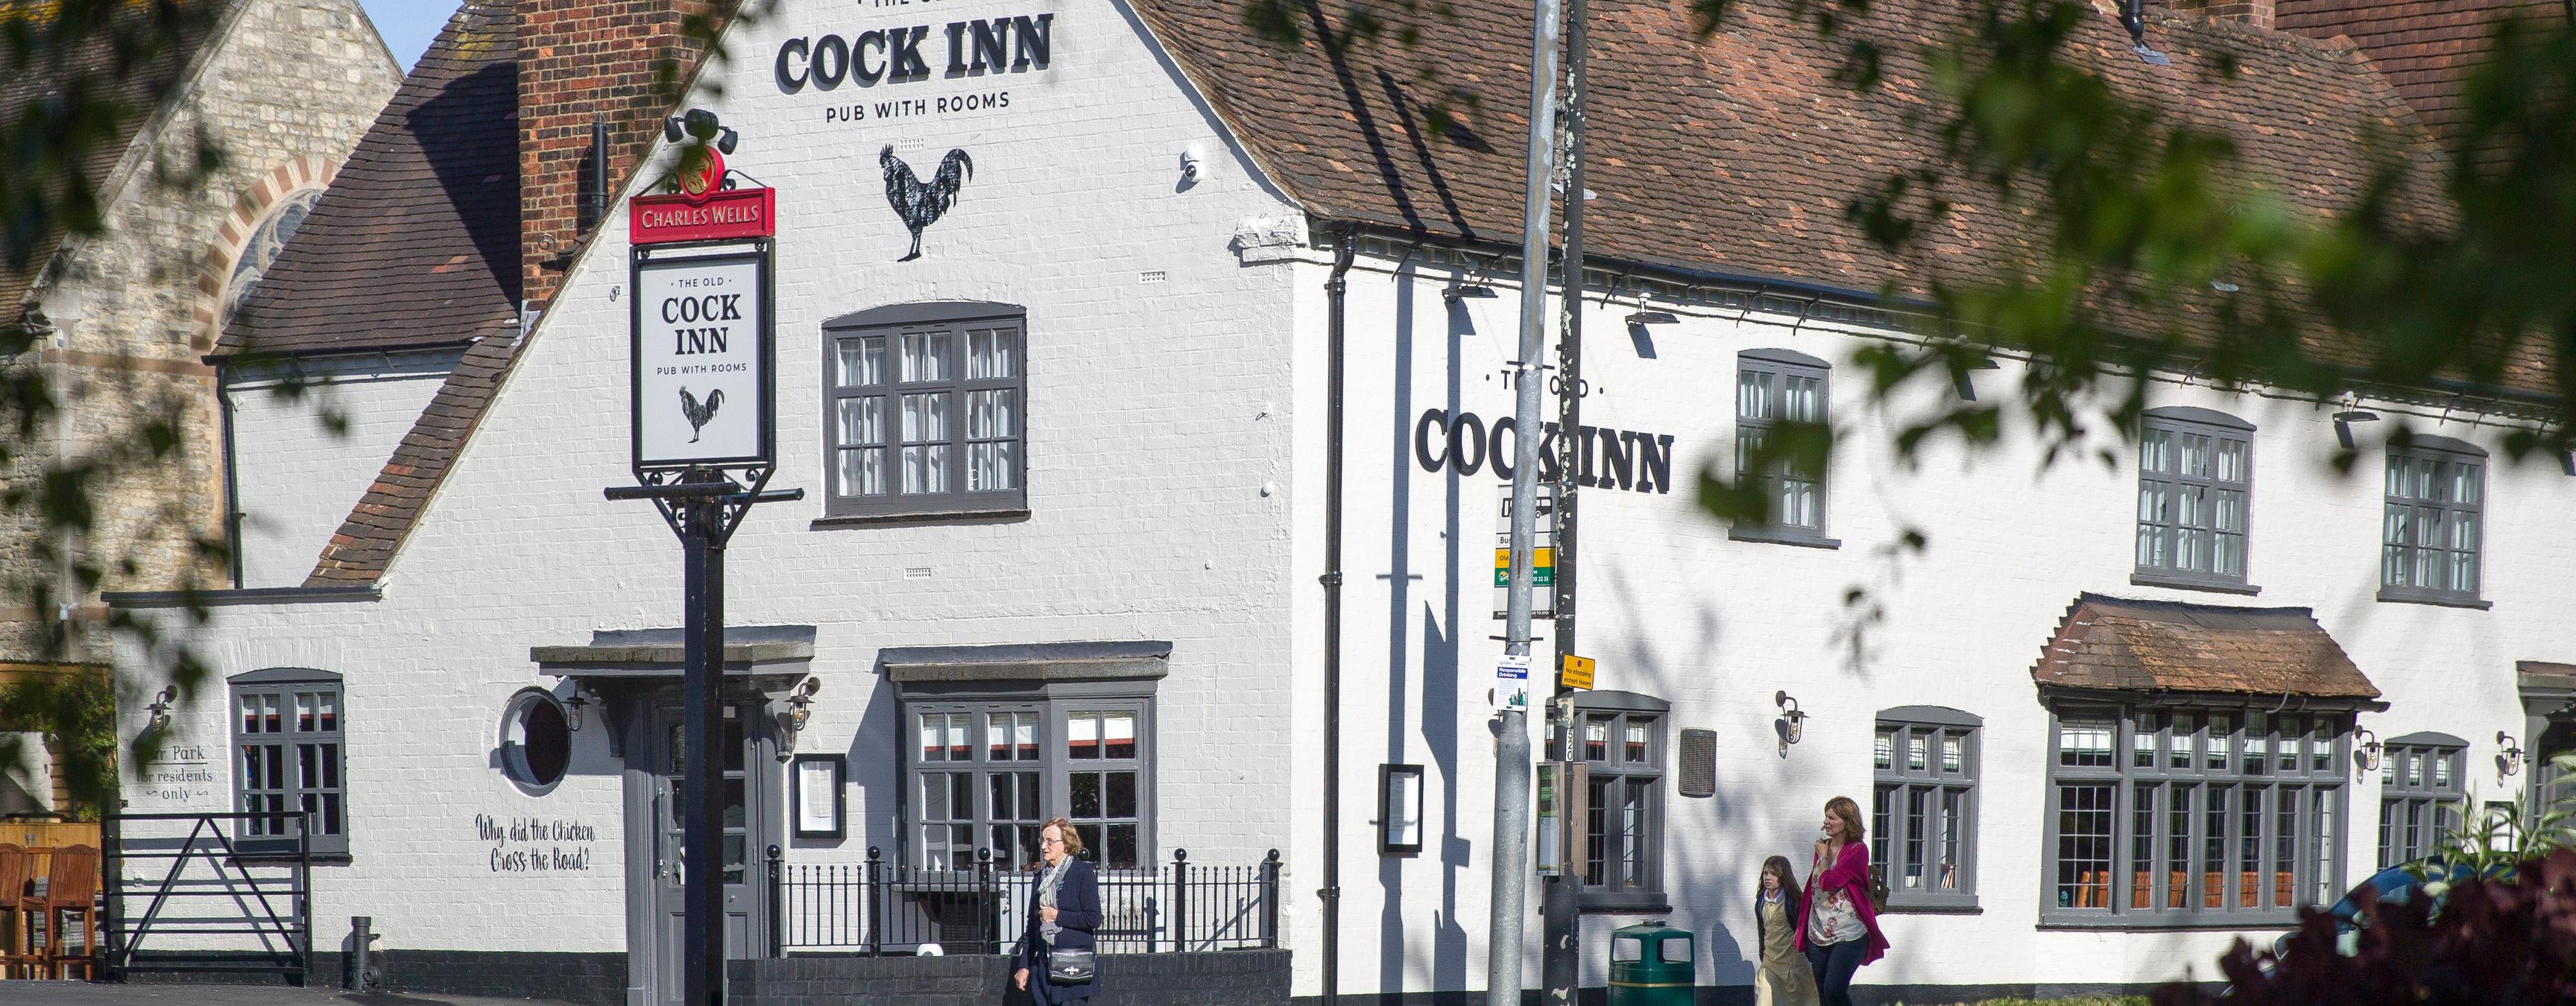 The Old Cock Inn Brand Cover